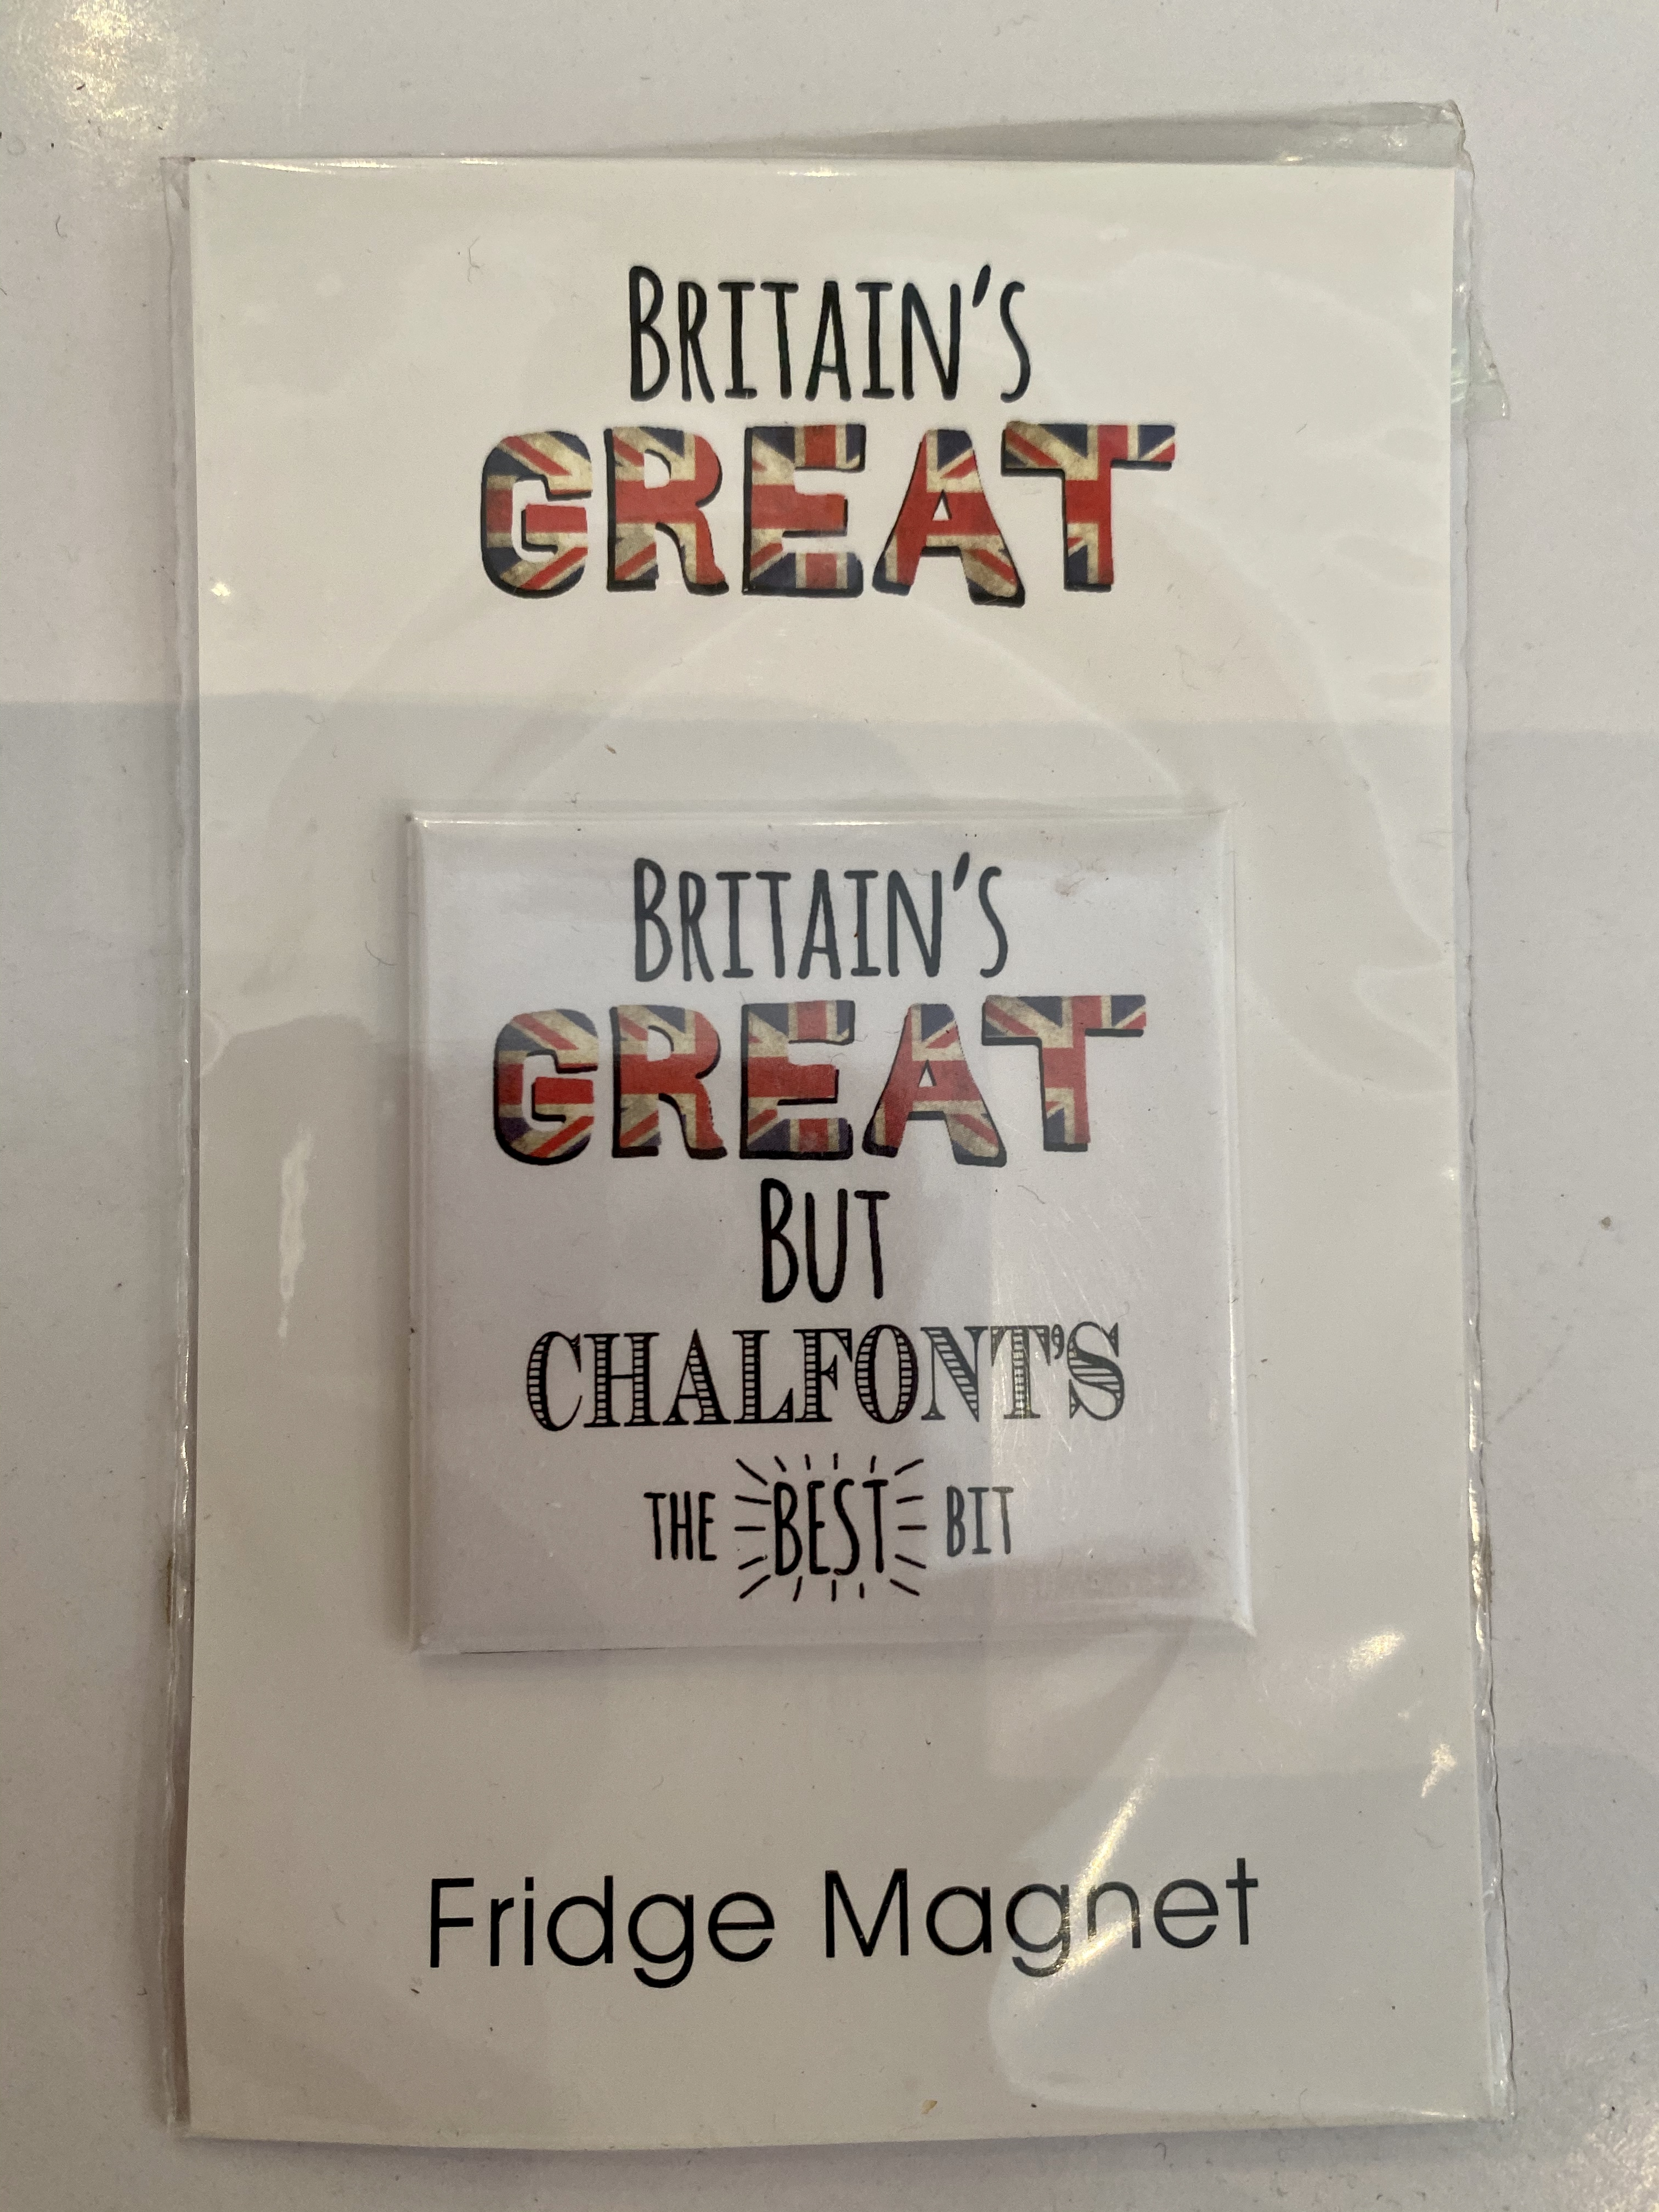 Chalfont fridge magnet